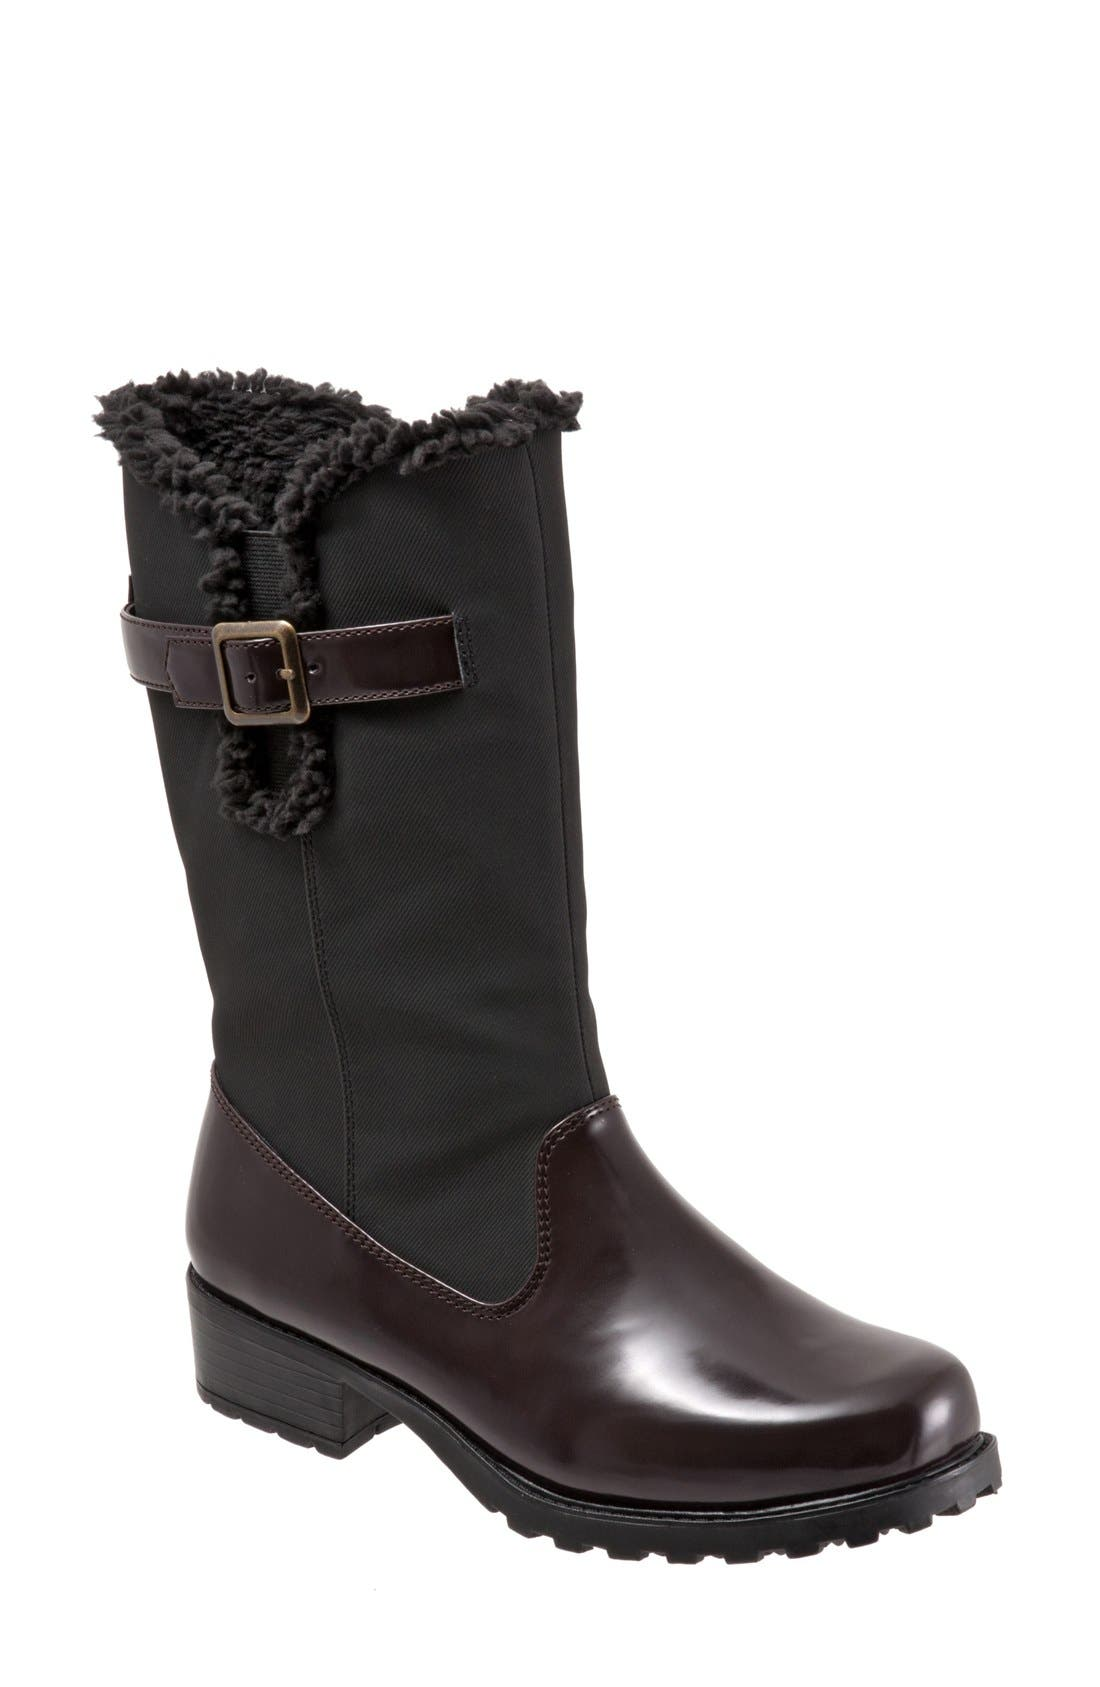 Main Image - Trotters 'Blizzard III' Boot